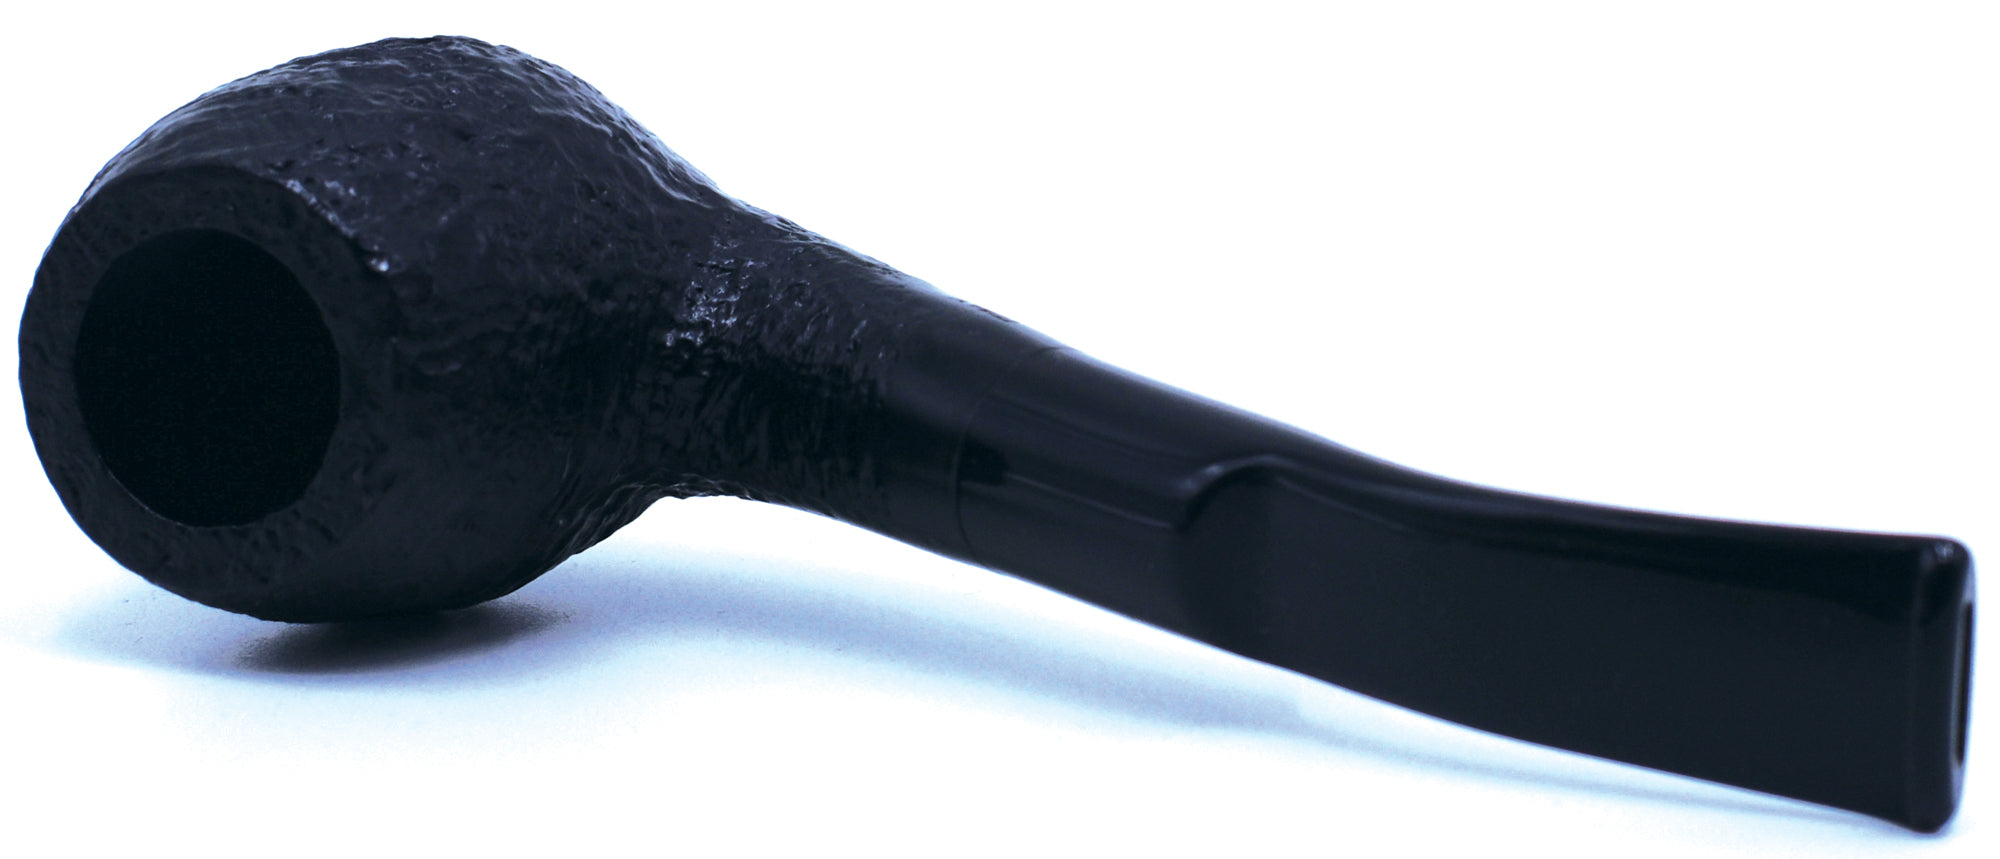 LEGENDEX® PAGANINI* 9 MM Filtered Briar Smoking Pipe Made In Italy 01-08-337